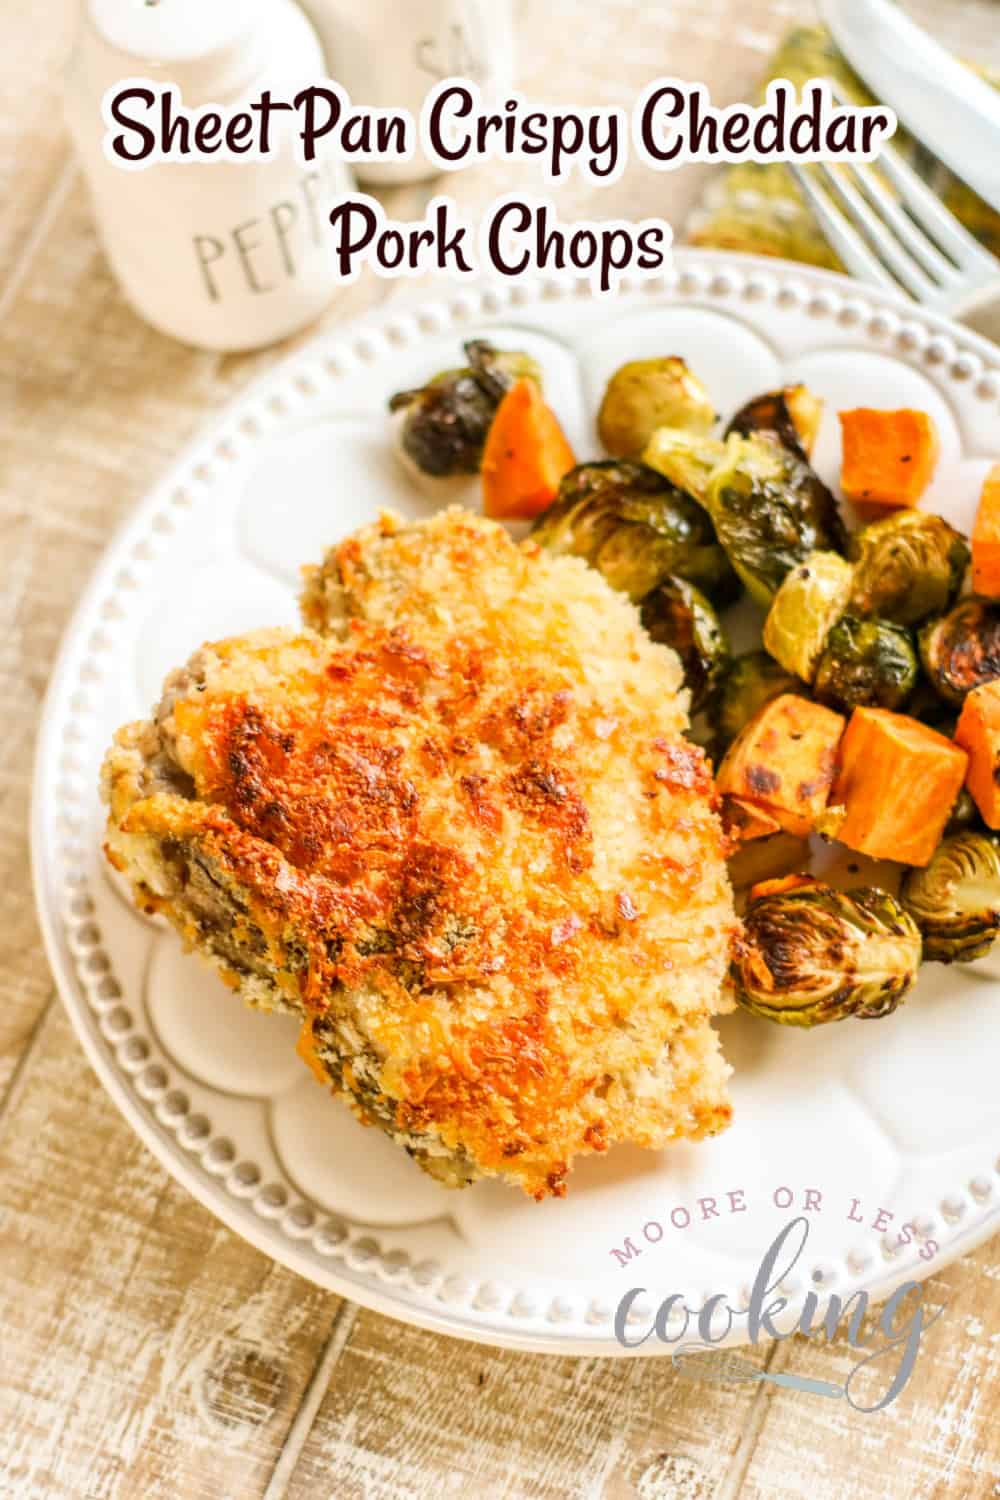 Sheet Pan Crispy Cheddar Pork Chops with Brussels Sprouts and Sweet Potatoes